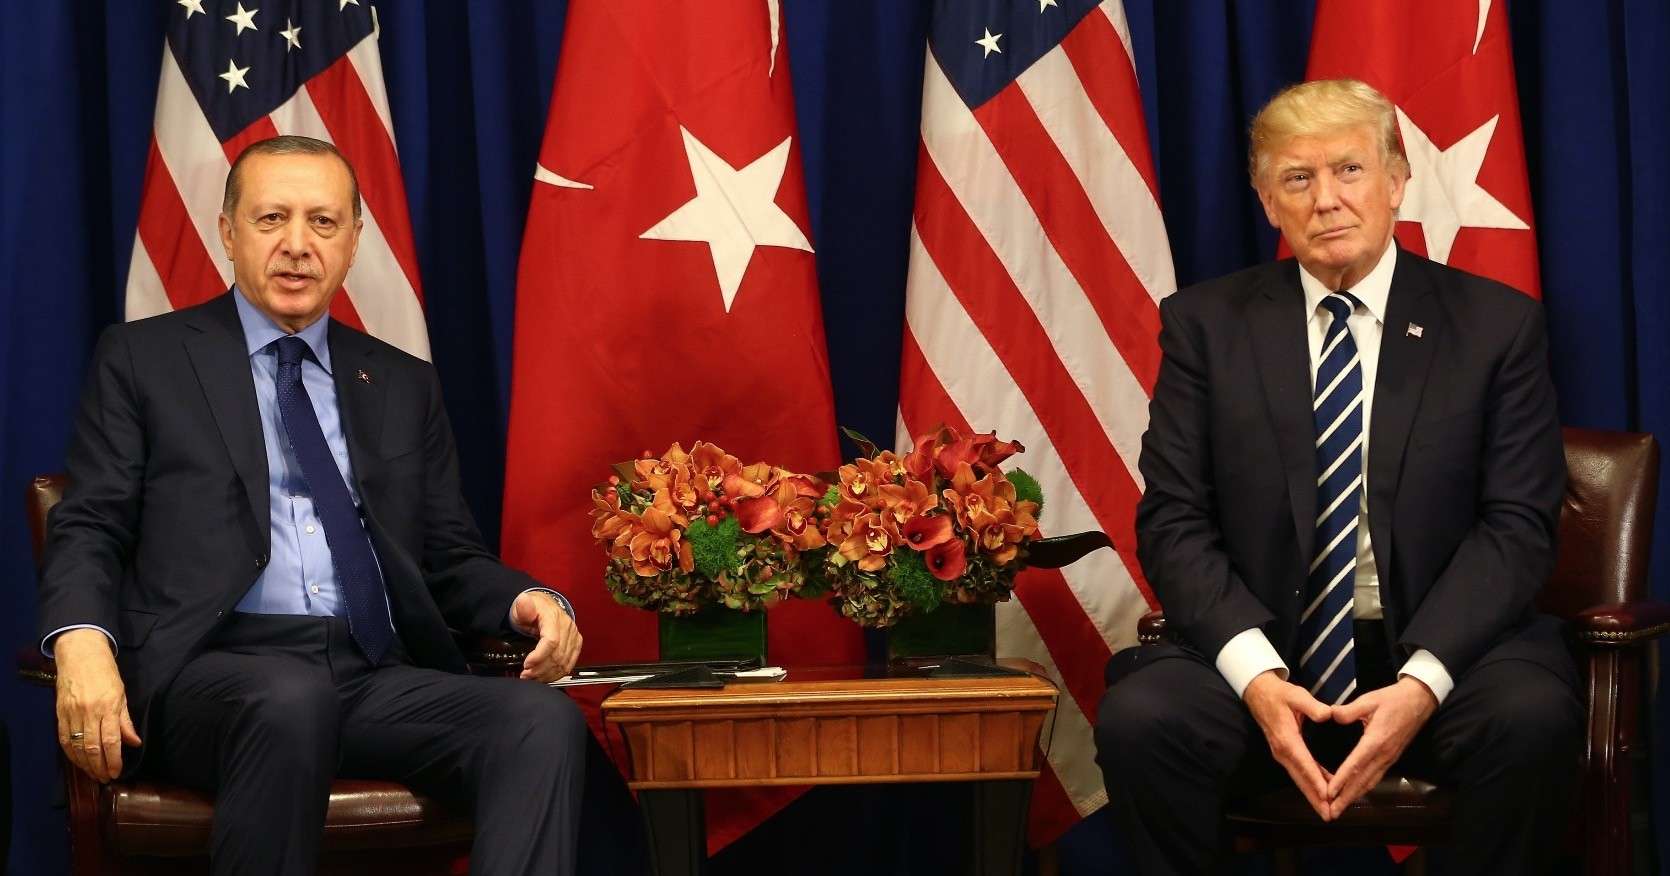 President Erdou011fan and U.S. President Trump during a news conference on Turkish-U.S. bilateral ties, at the White House, Sept. 21, 2017.